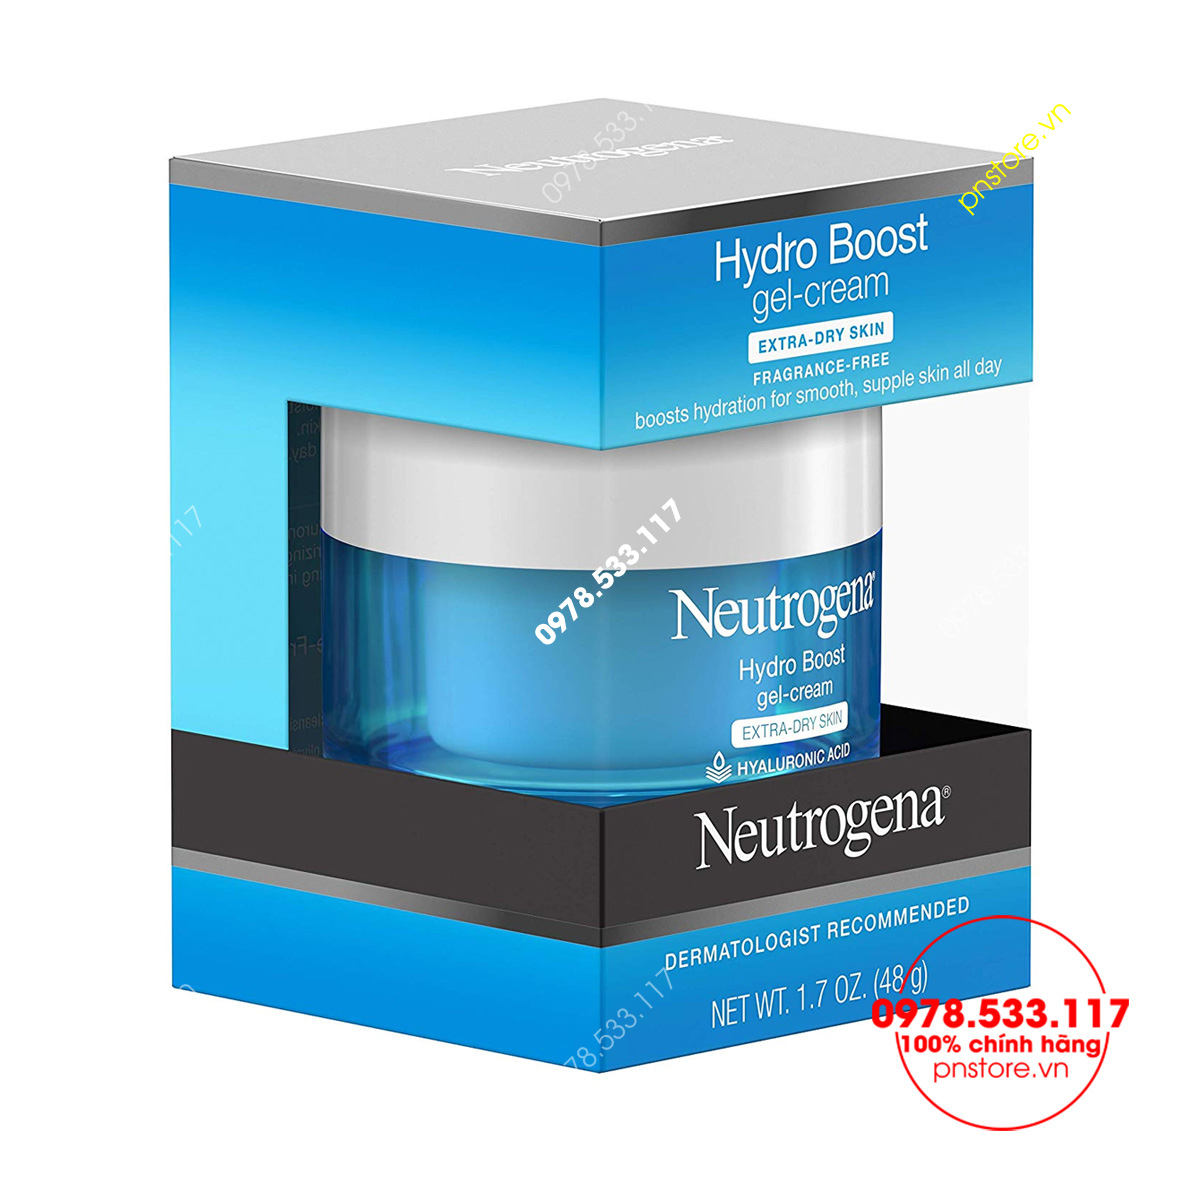 kem-duong-am-neutrogena-hydro-boost-gel-cream-extra-dry-skin-chinh-hang-my-pn37395